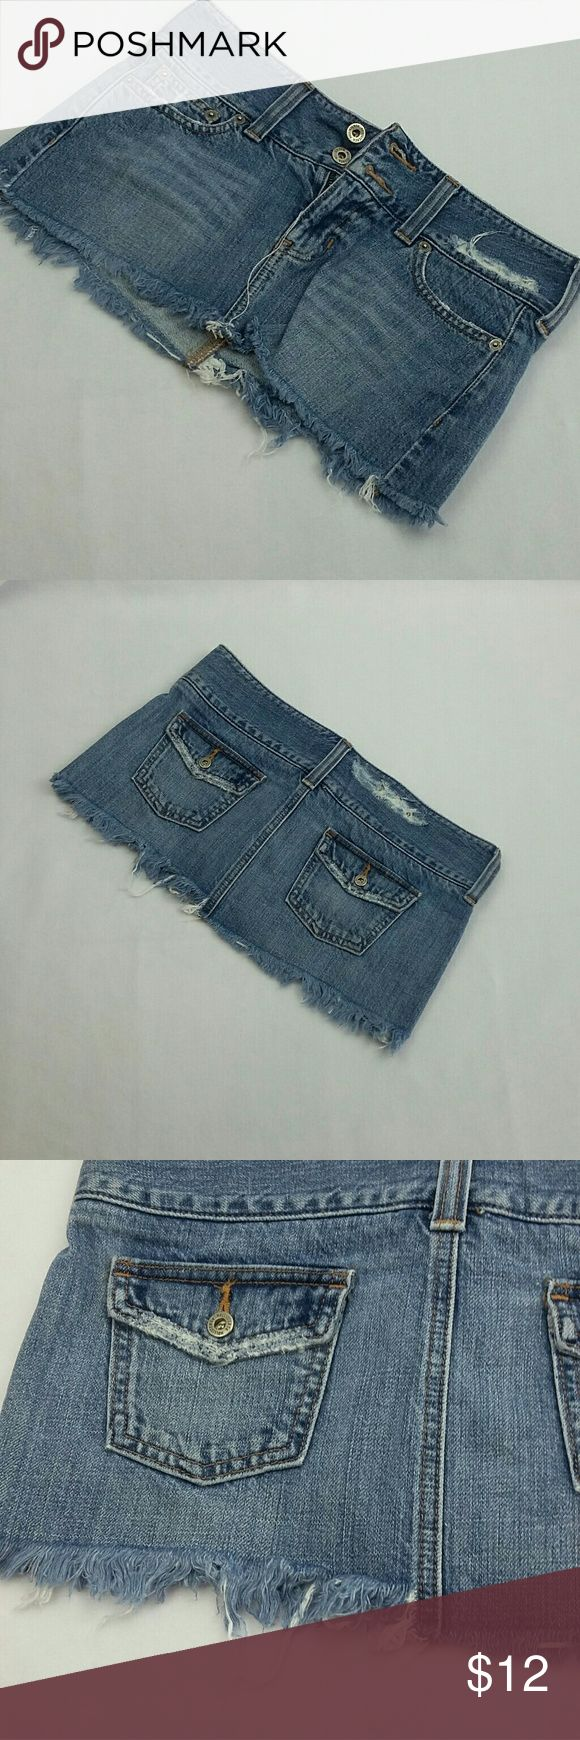 """Hollister Jean Mini Skirt Distressed 3 Hollister Jean Mini Skirt Distressed, sz 3 Cut off , wash worned out .   10"""" length 31"""" waist  Good pre-owned condition  XNO TRADES XNO HOLDS   Bundle for extra savings!   I love any reasonable offers!   0188 Hollister Skirts Mini"""